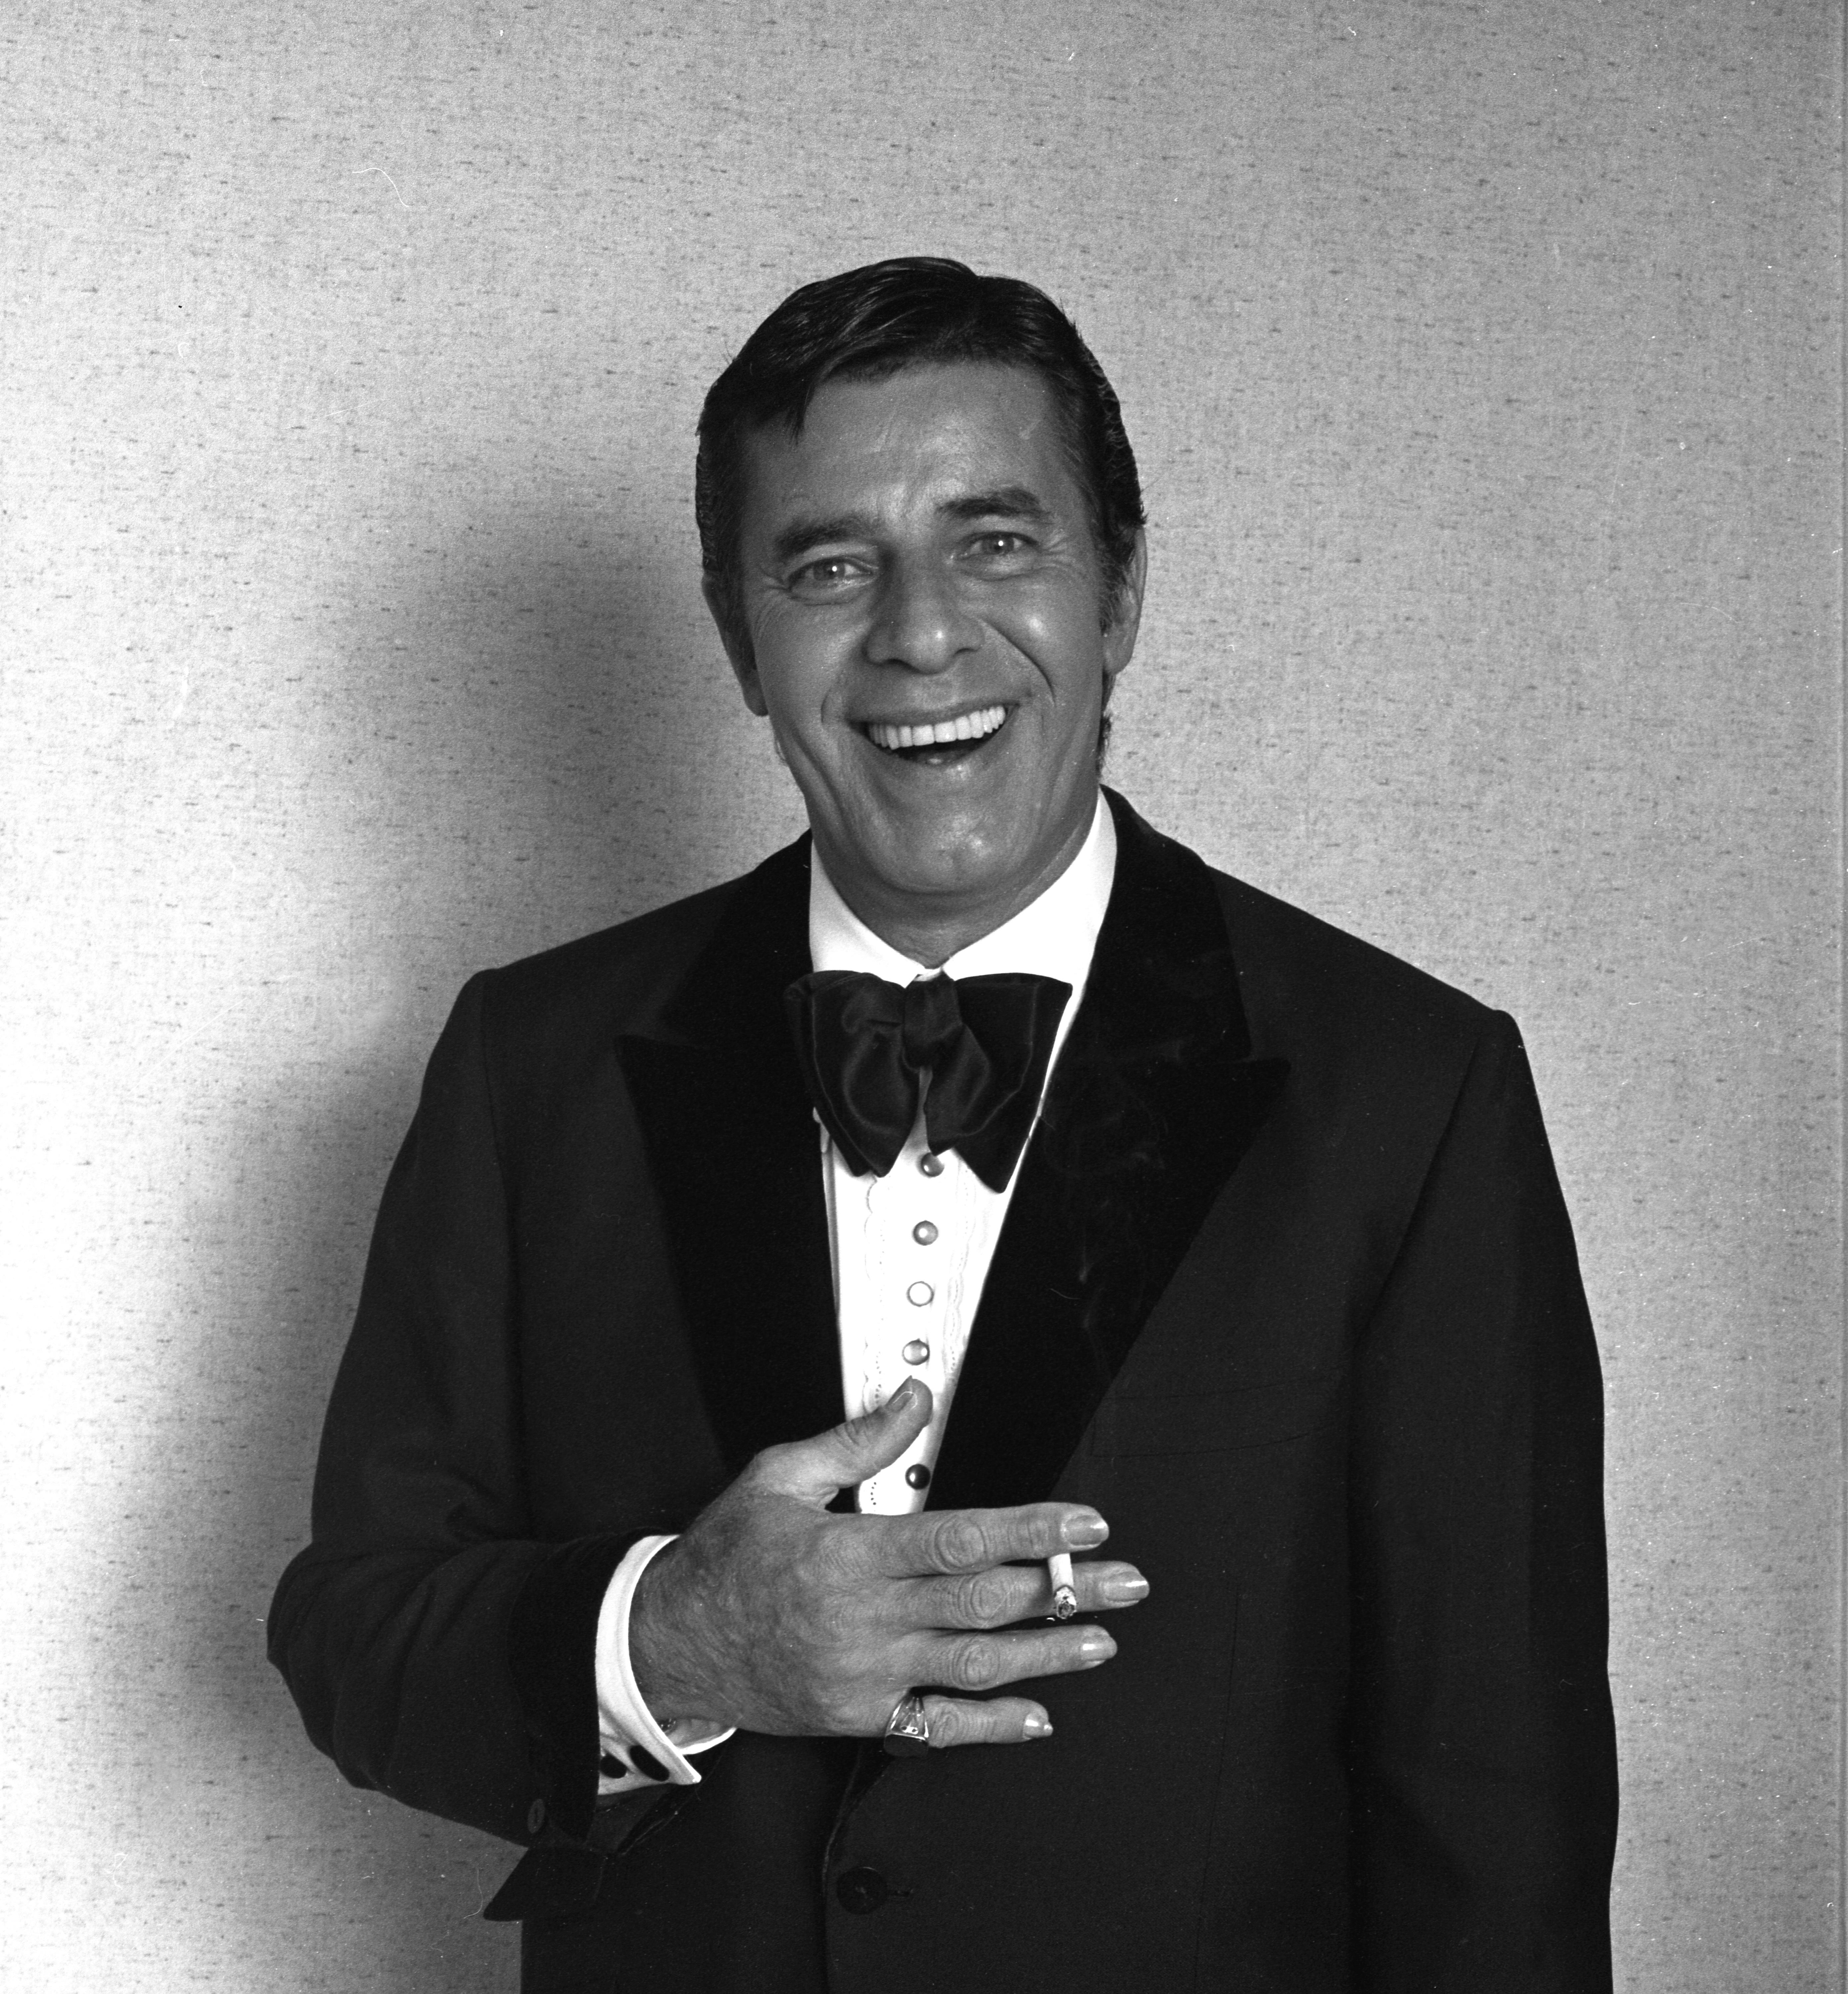 Jerry Lewis at the Sahara. 10-29-79. CREDIT: Las Vegas News Bureau